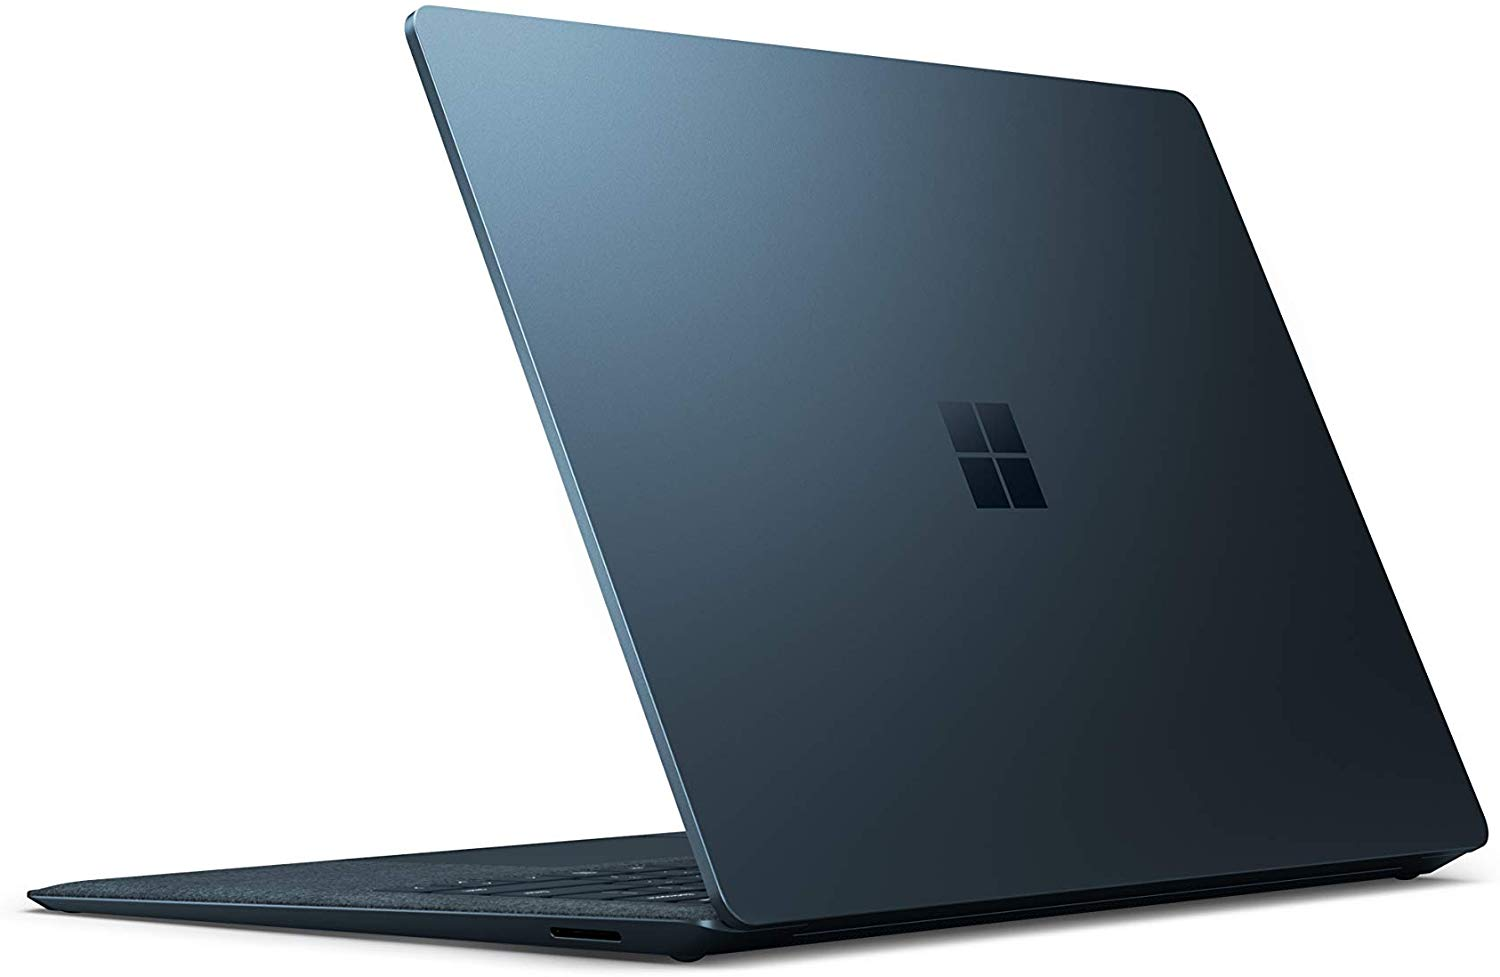 New Microsoft Surface Laptop 3 – 13.5